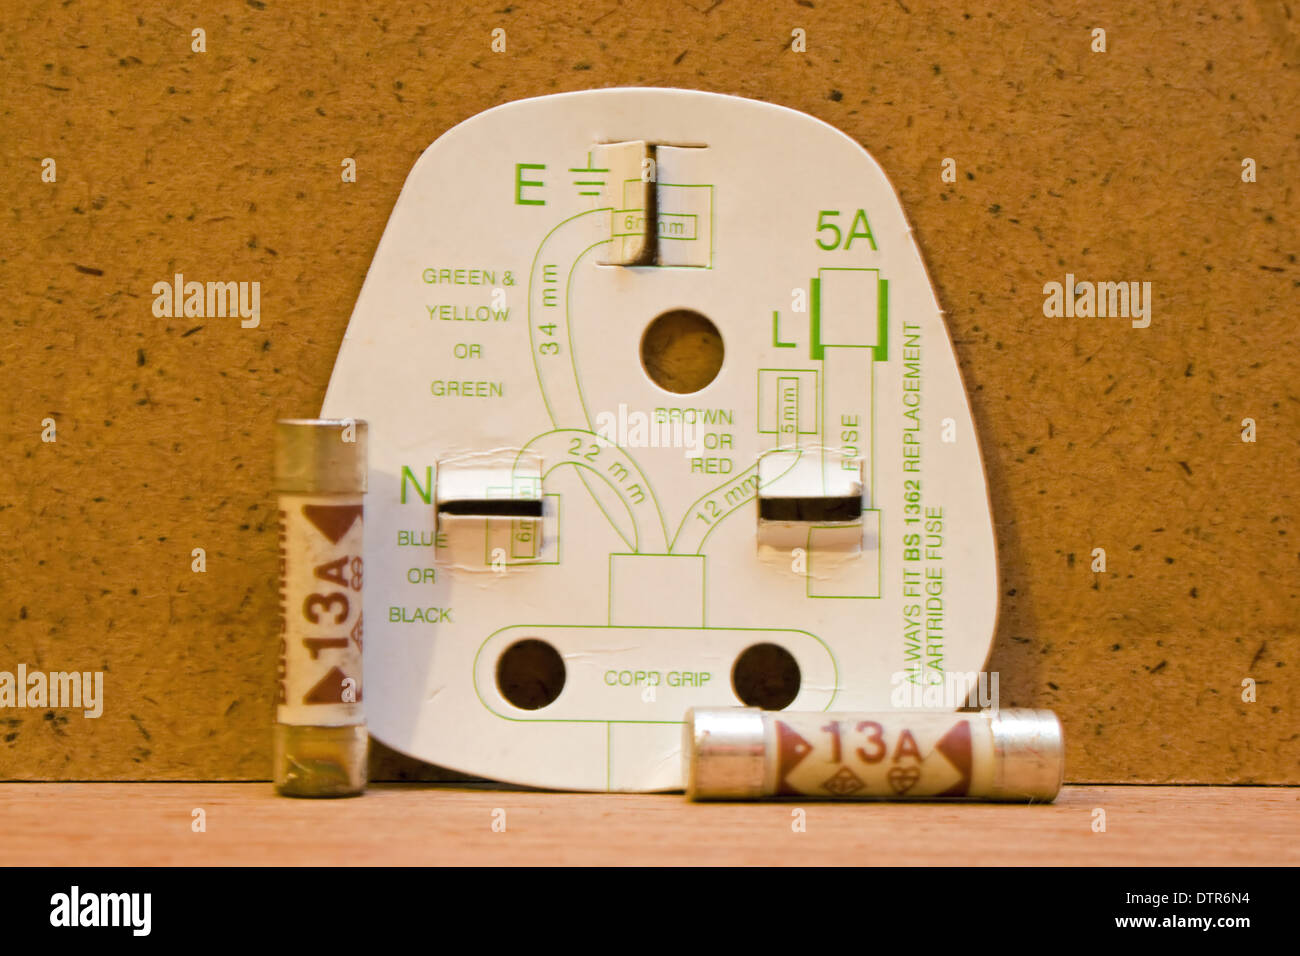 uk three pin plug wiring diagram with 13amp fuses DTR6N4 uk three pin plug wiring diagram with 13amp fuses stock photo 7 pin wiring diagram at nearapp.co